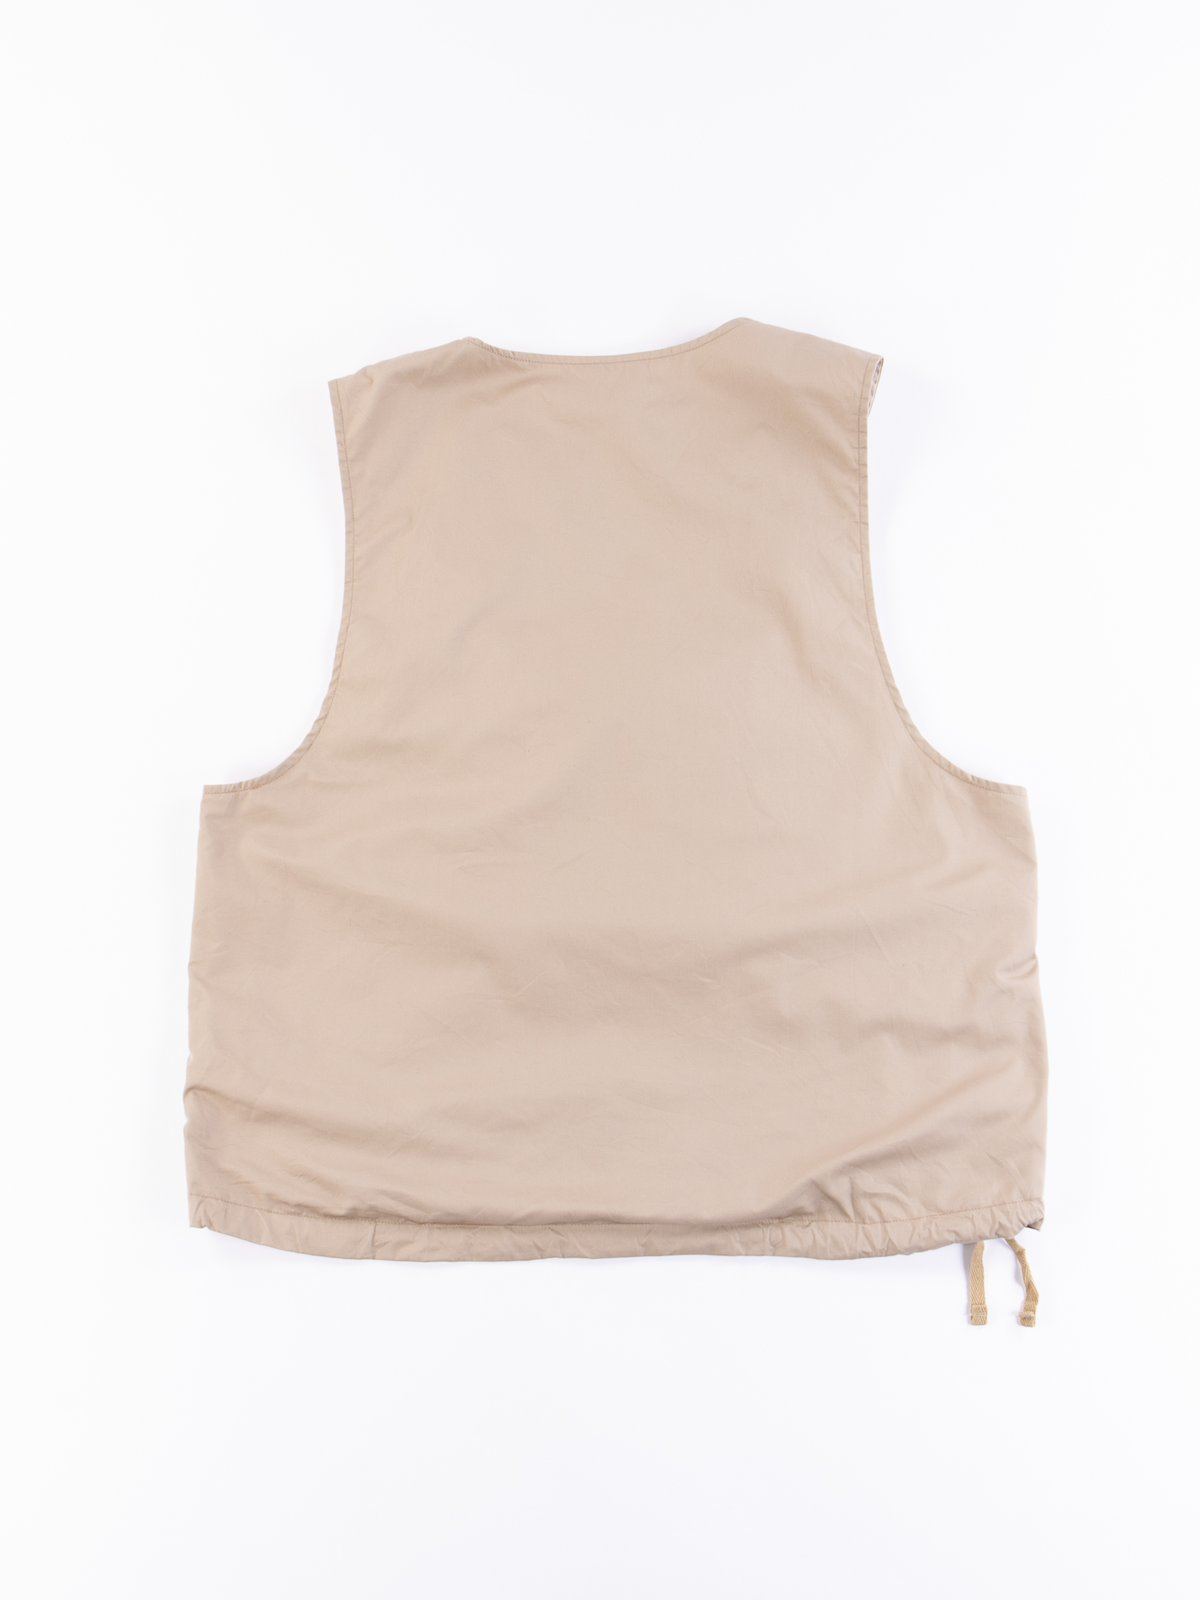 Khaki High Count Twill Cover Vest - Image 5